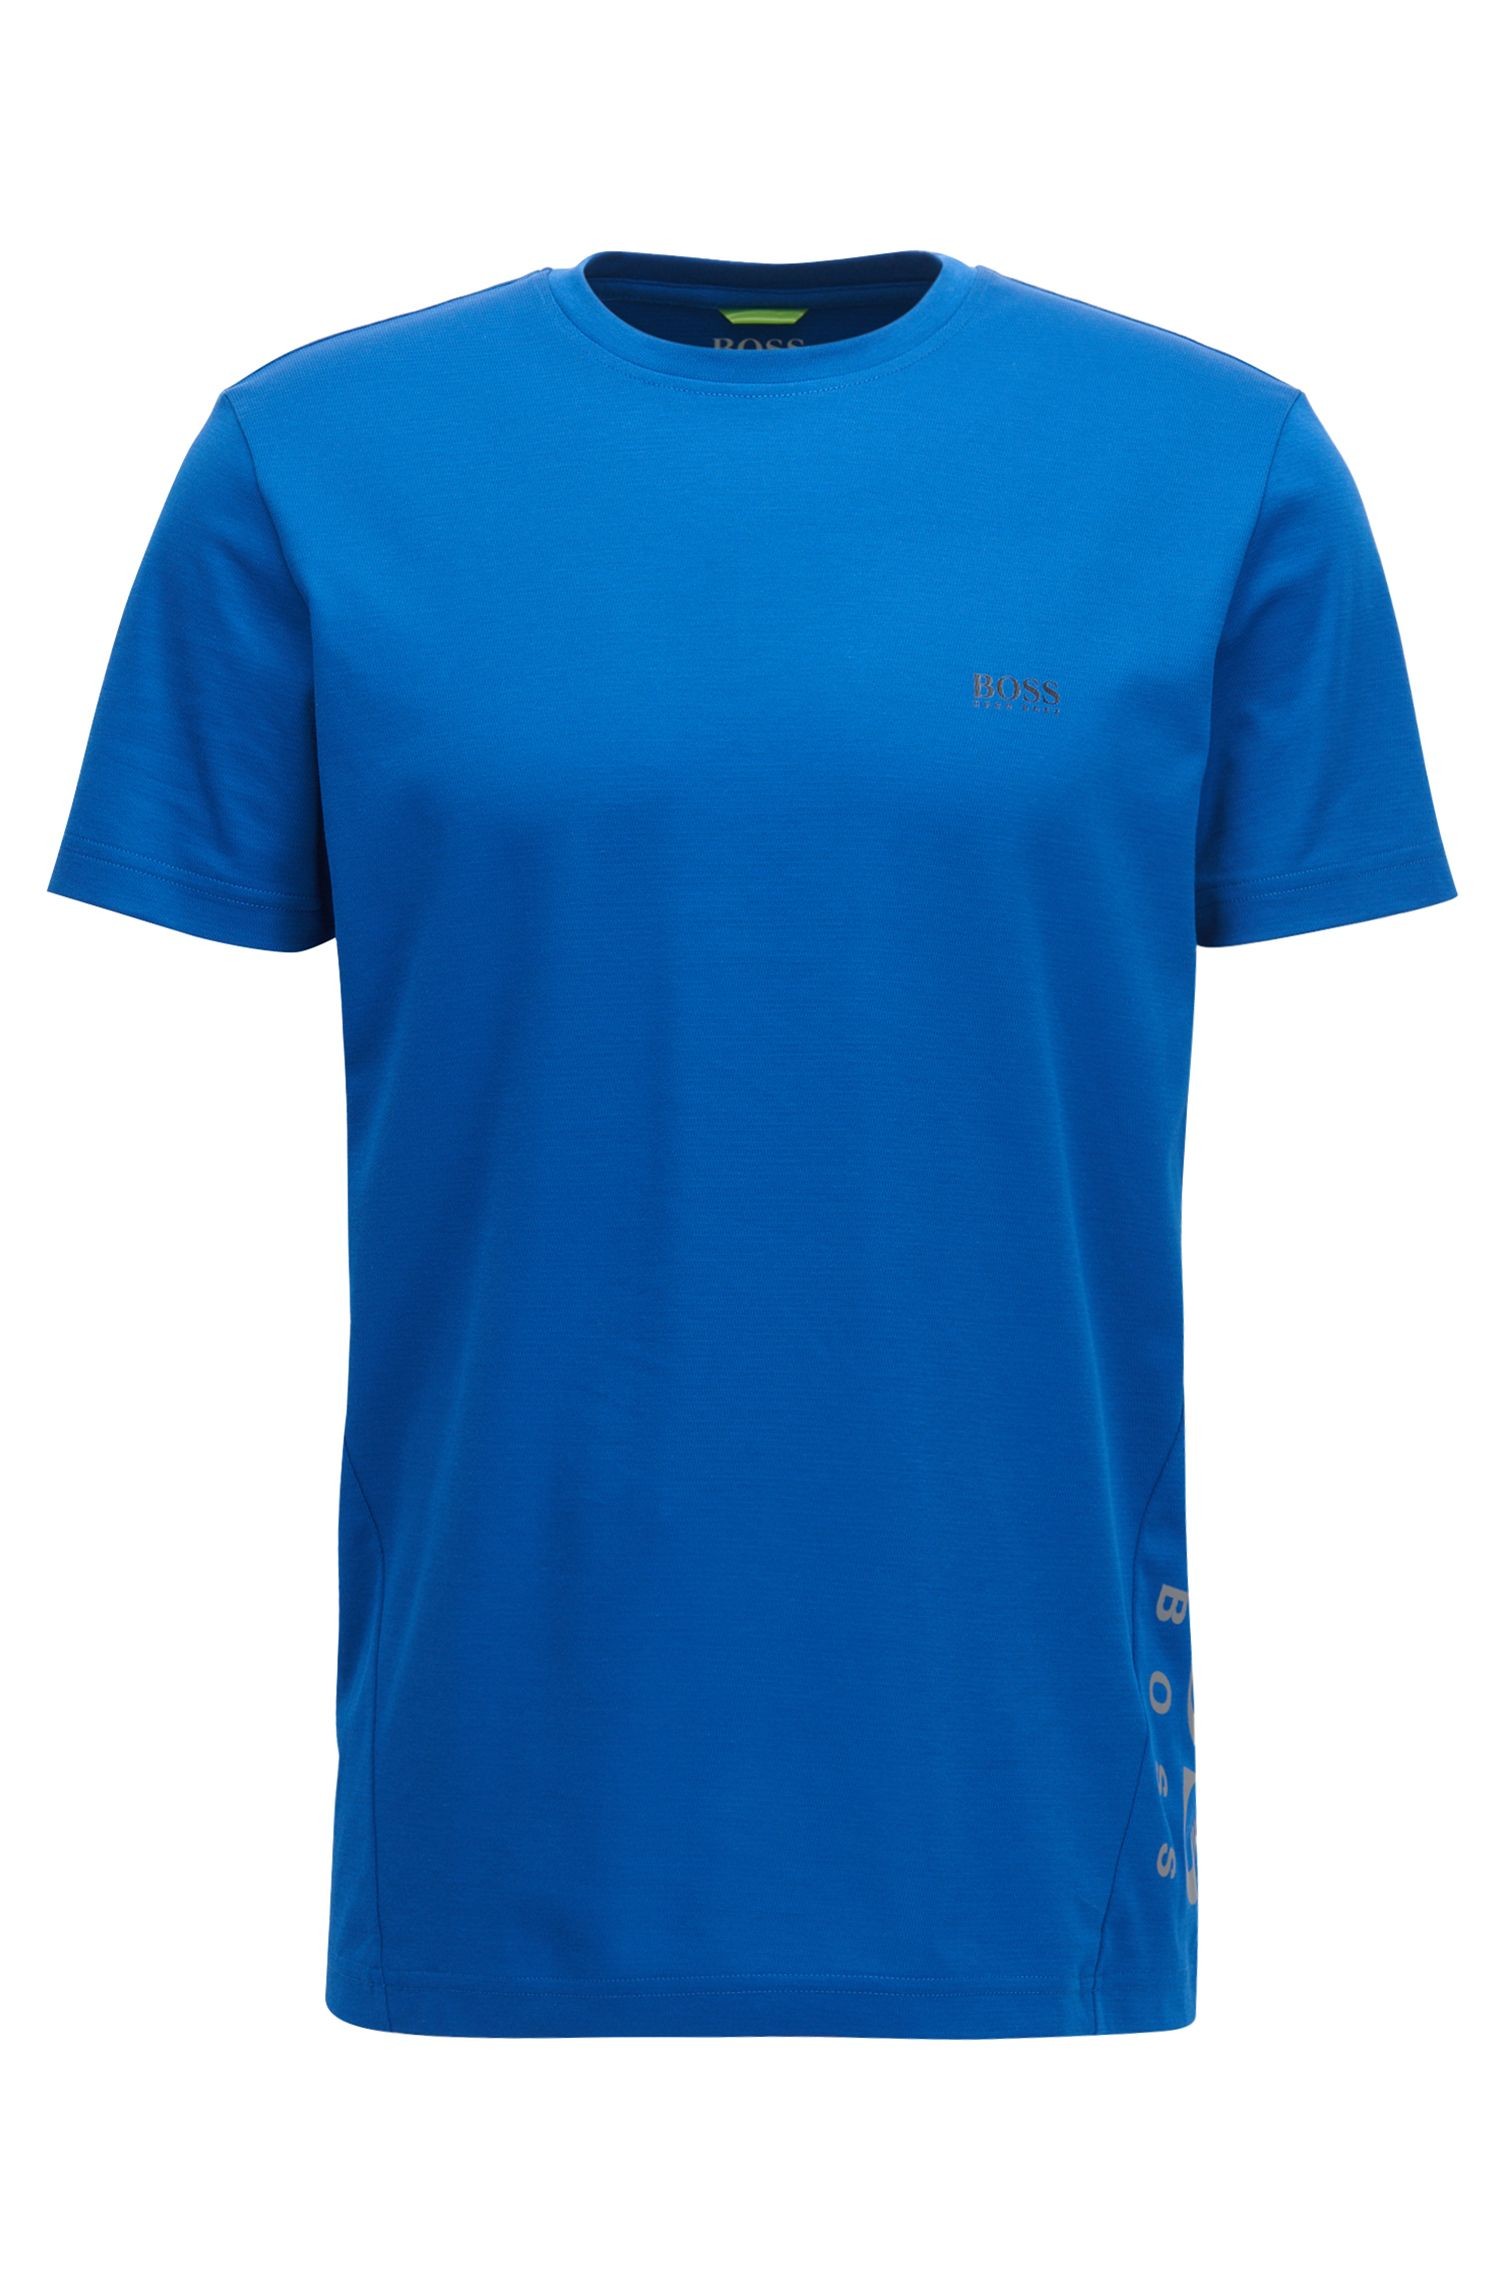 Moisture Management Cotton Blend T-Shirt | TL Tech